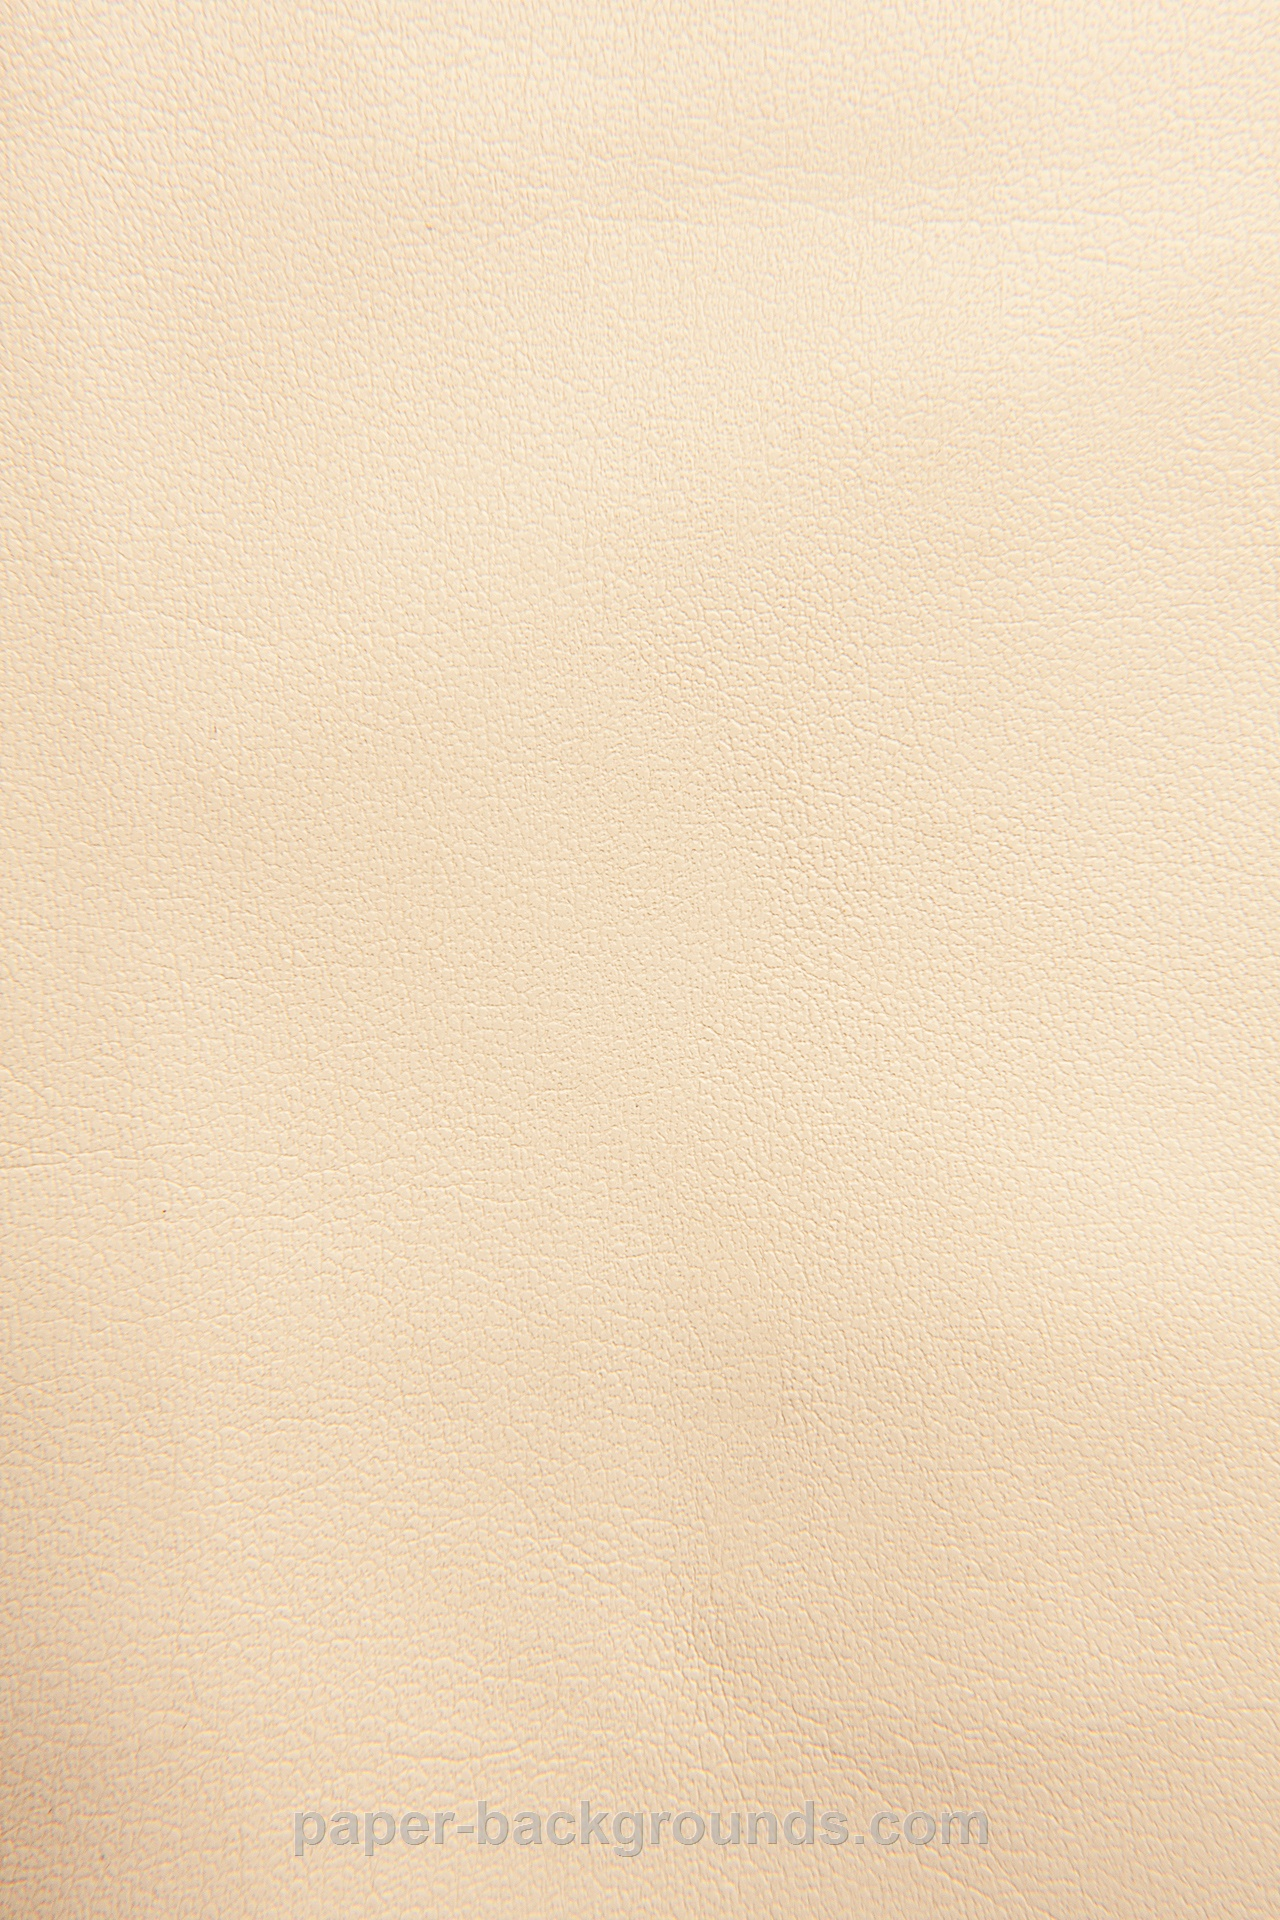 cream leather texture background hd Paper Backgrounds 1280x1920